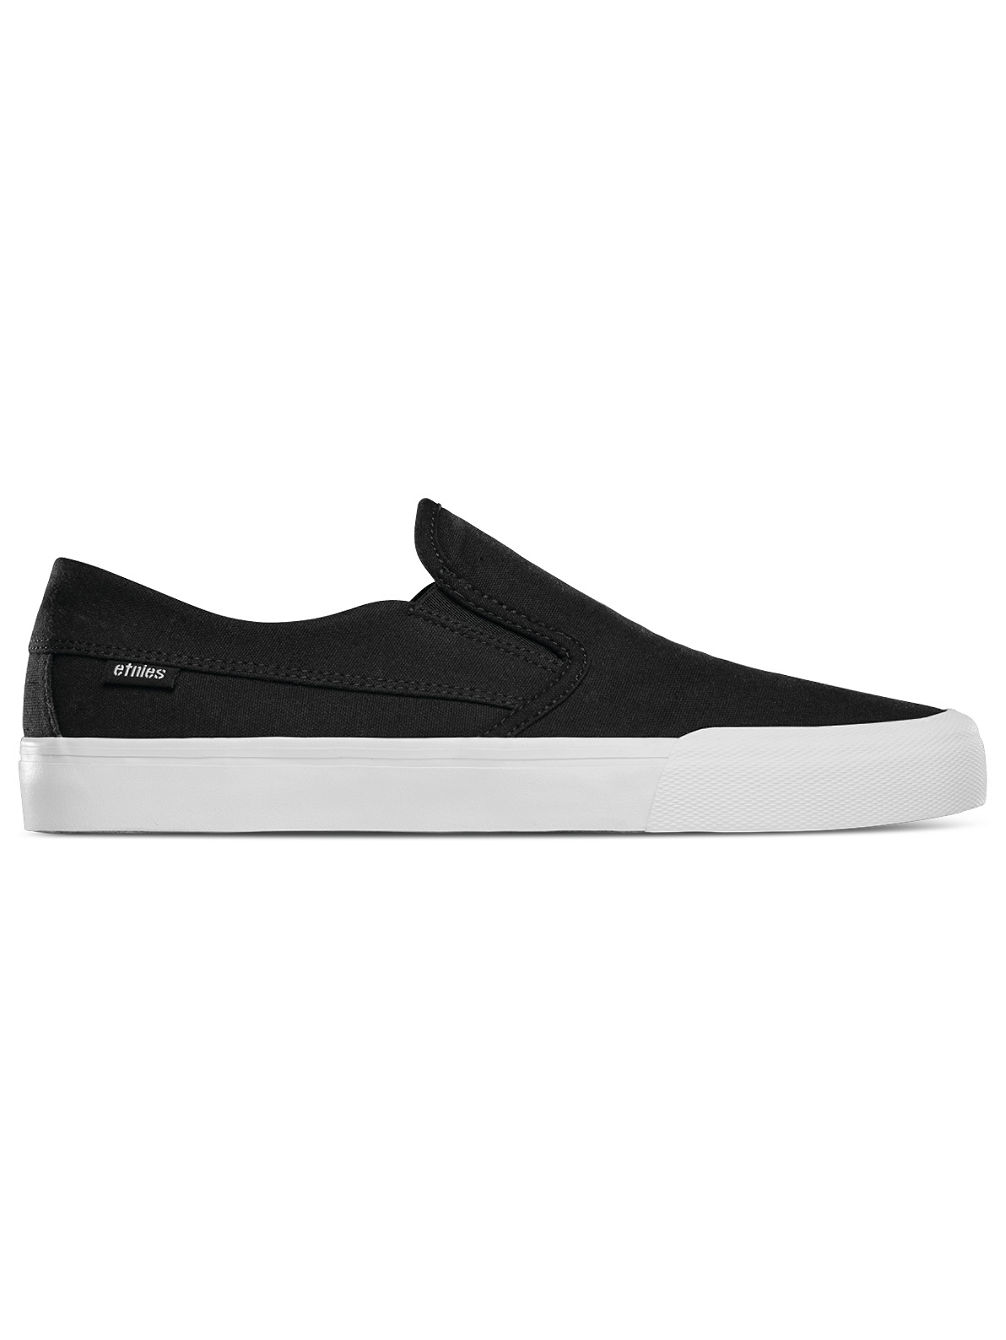 Langston Slip-Ons